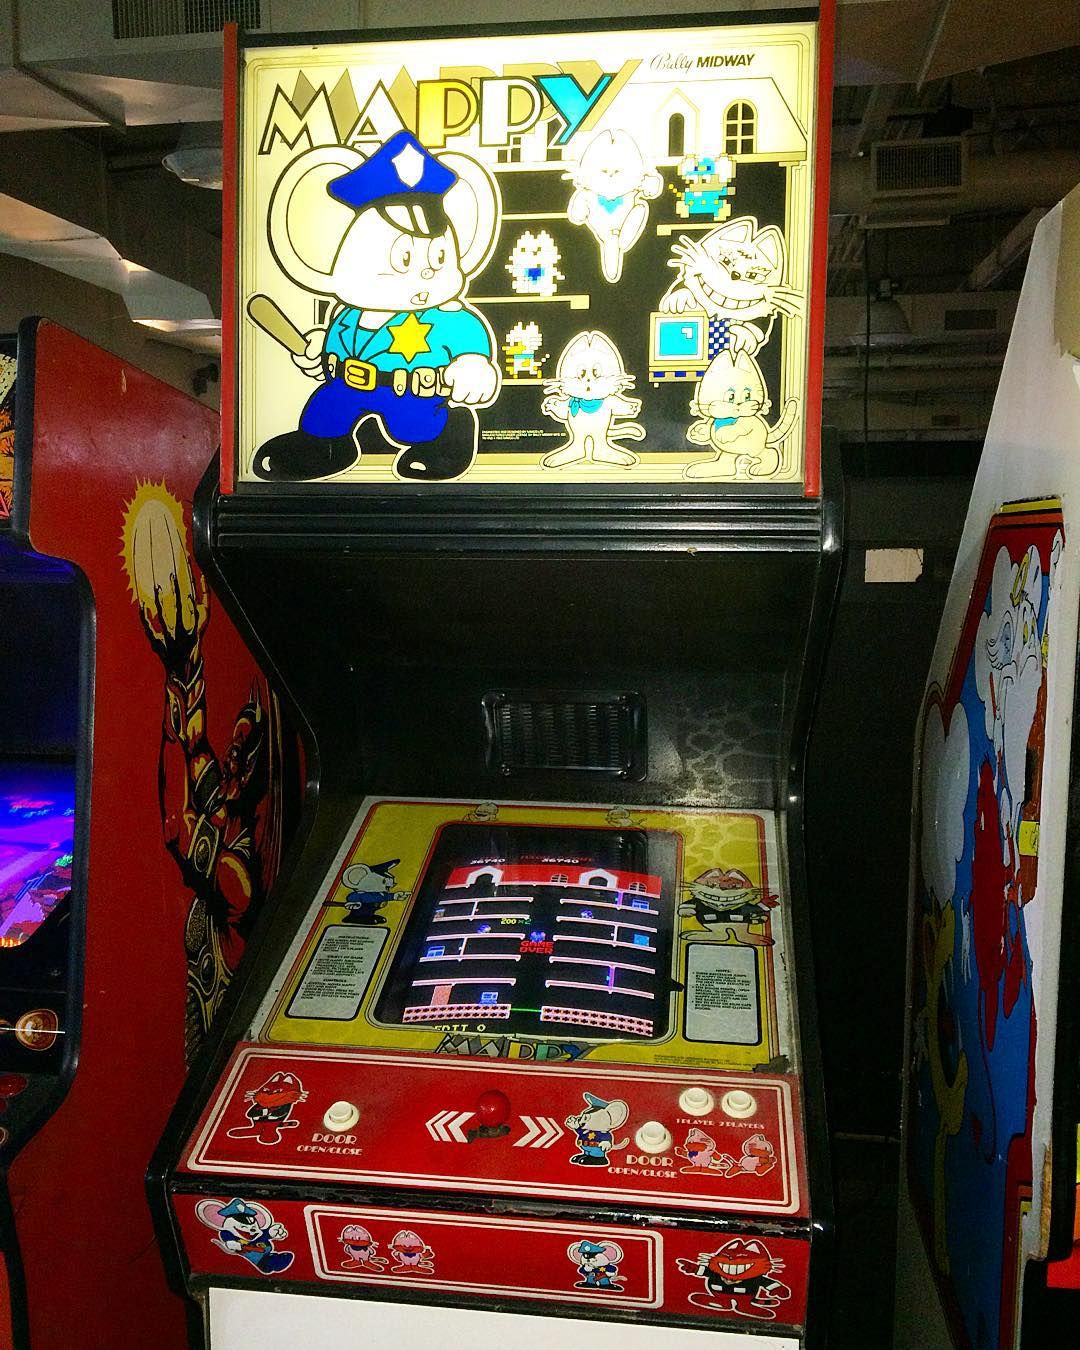 Mappy #Mappy #namco #arcade #videogames #retrogaming #twingalaxies ...